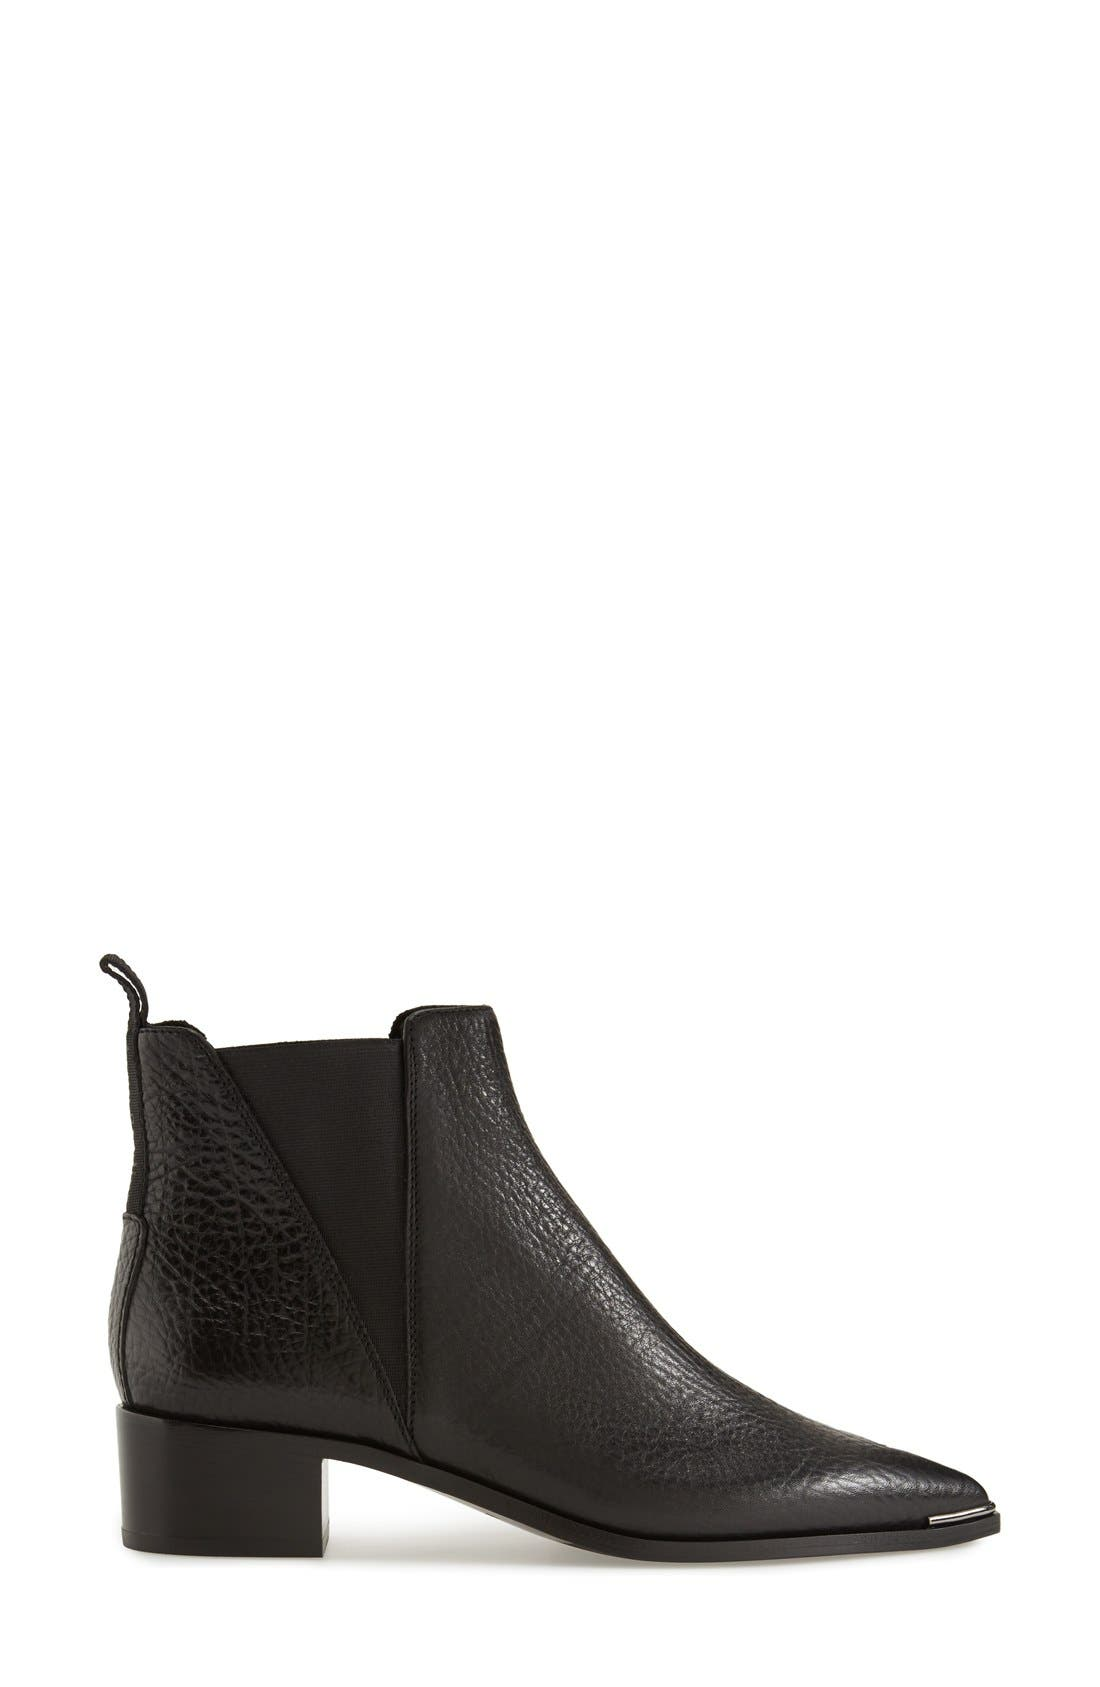 Jensen Pointy Toe Bootie,                             Alternate thumbnail 4, color,                             BLACK GRAIN LEATHER